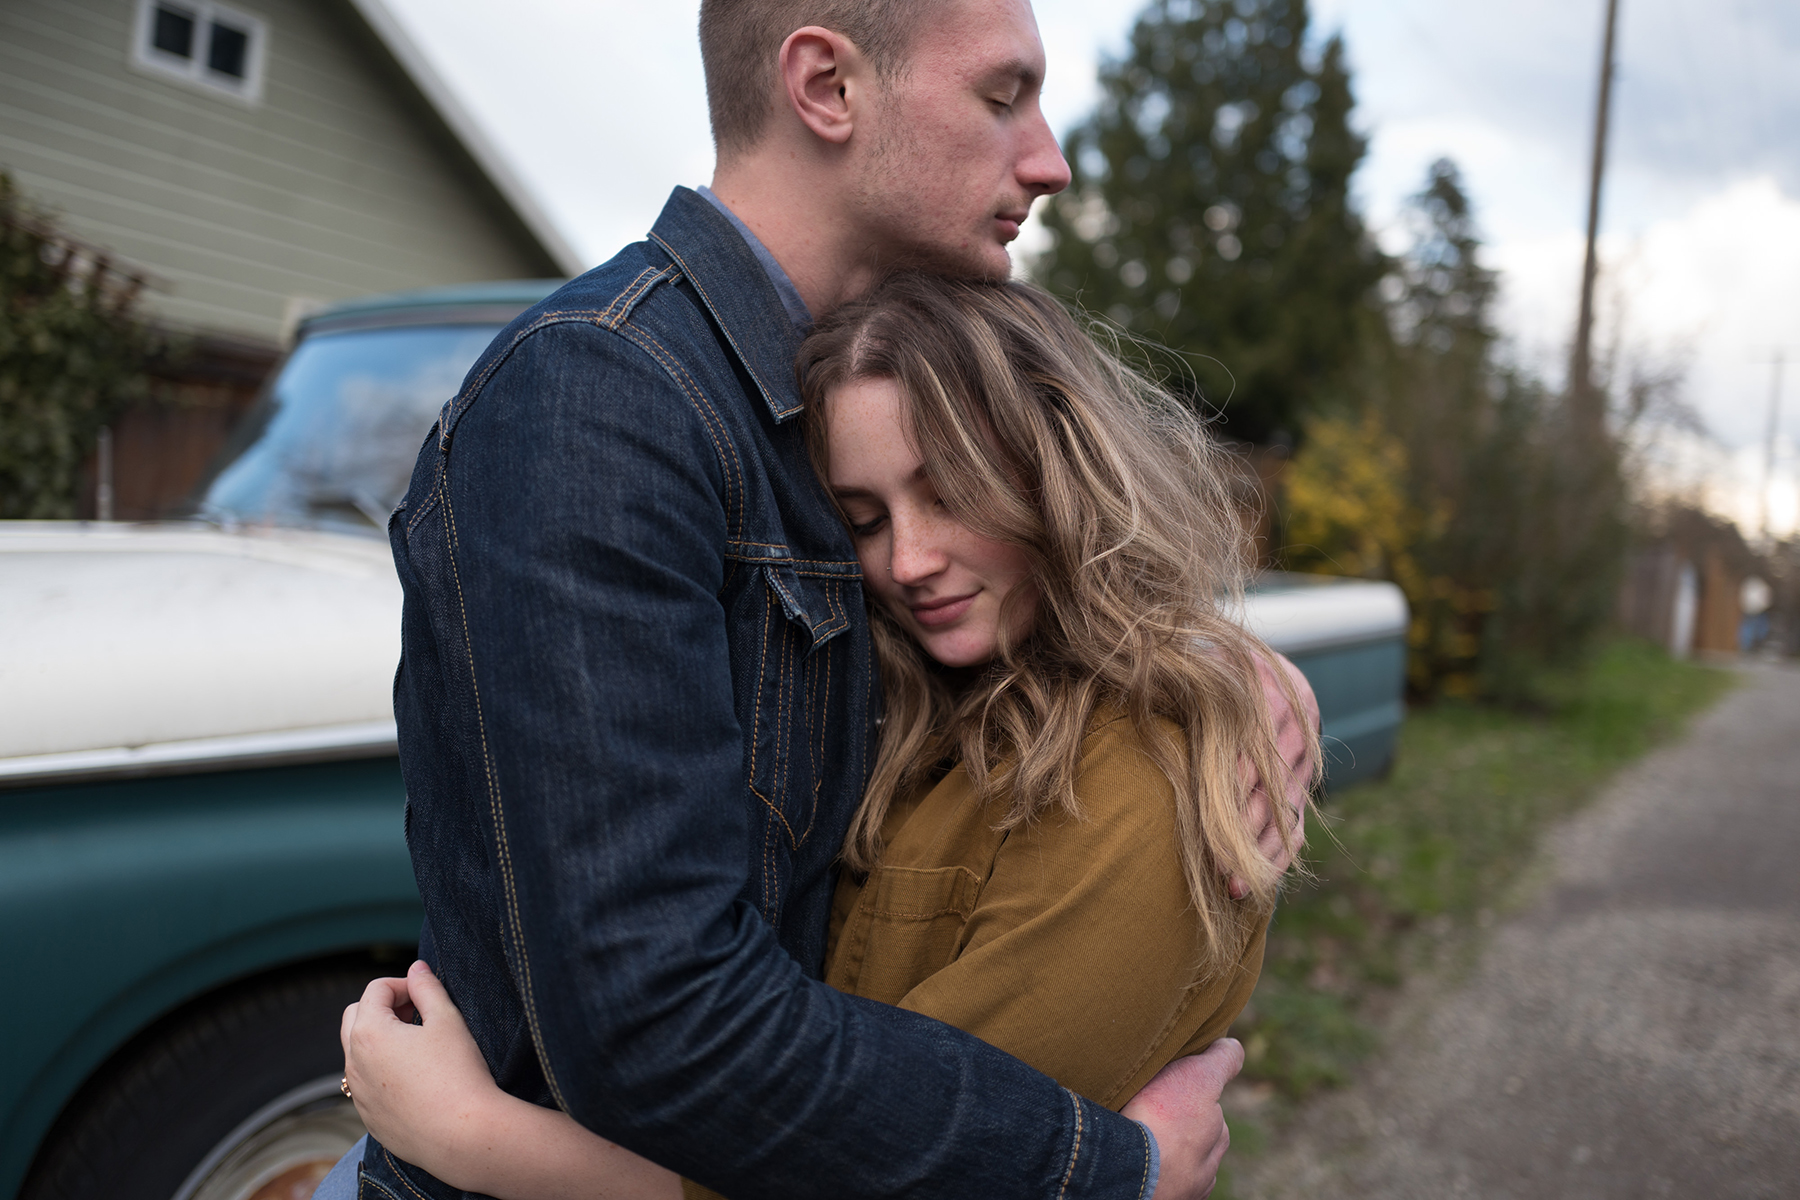 An unedited photo of a couple that embraces each other closely in front of a car.